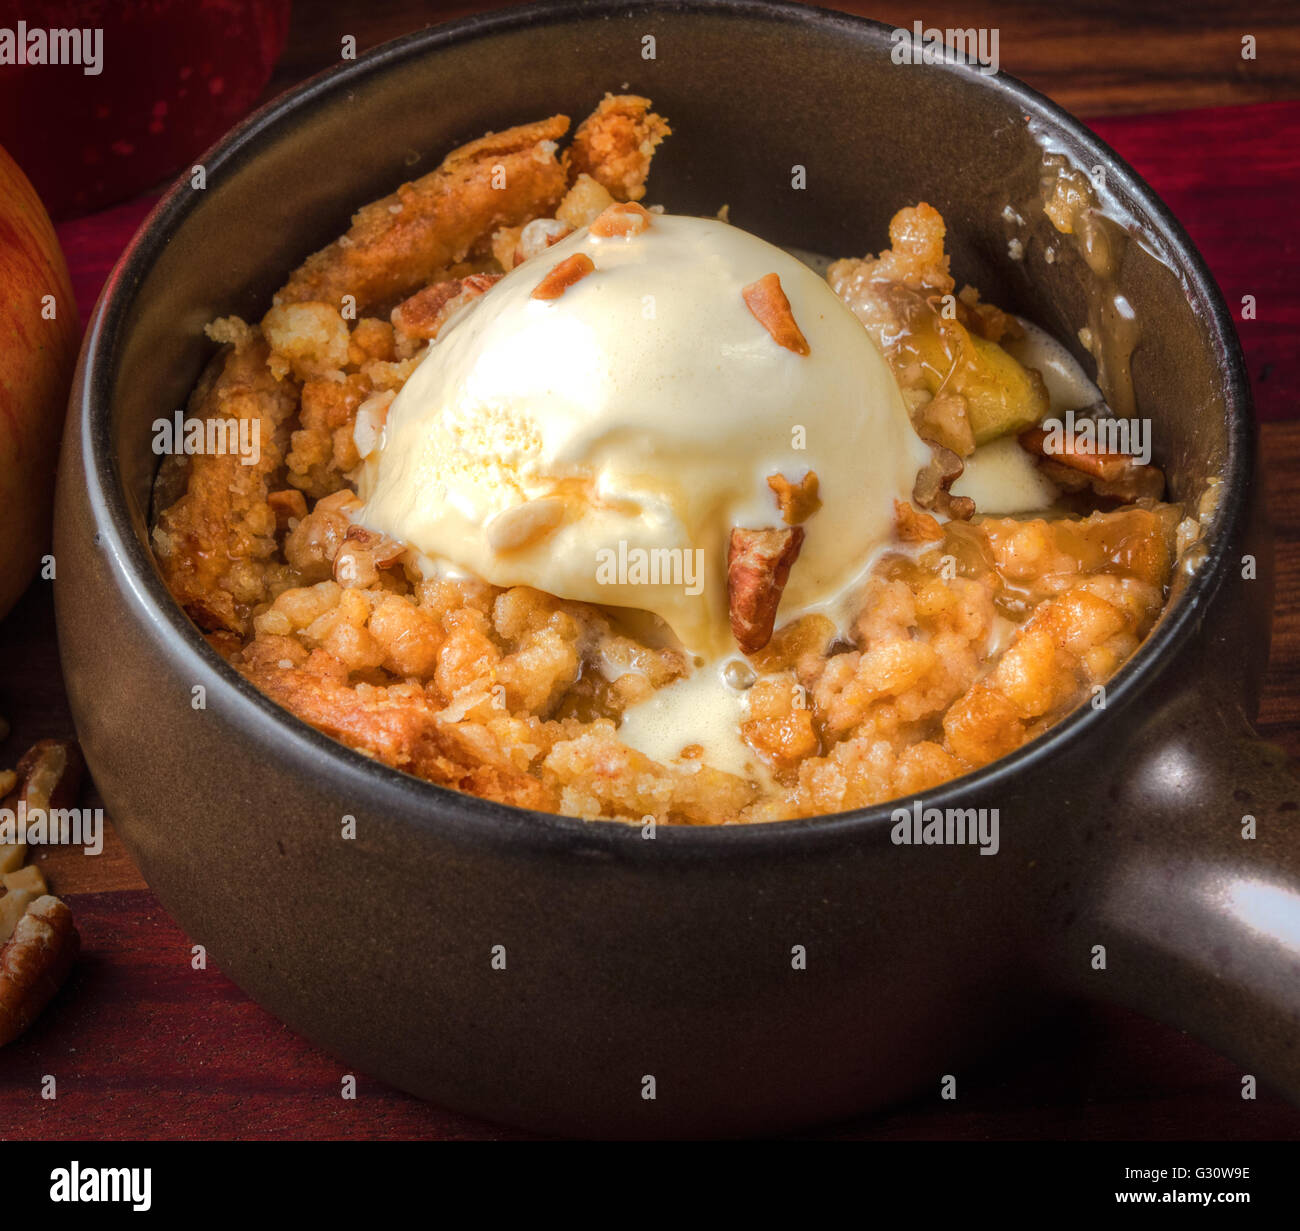 Apple Crisp A La Mode. Fresh hot apple crisp with a scoop of ice cream and homemade caramel sauce. - Stock Image